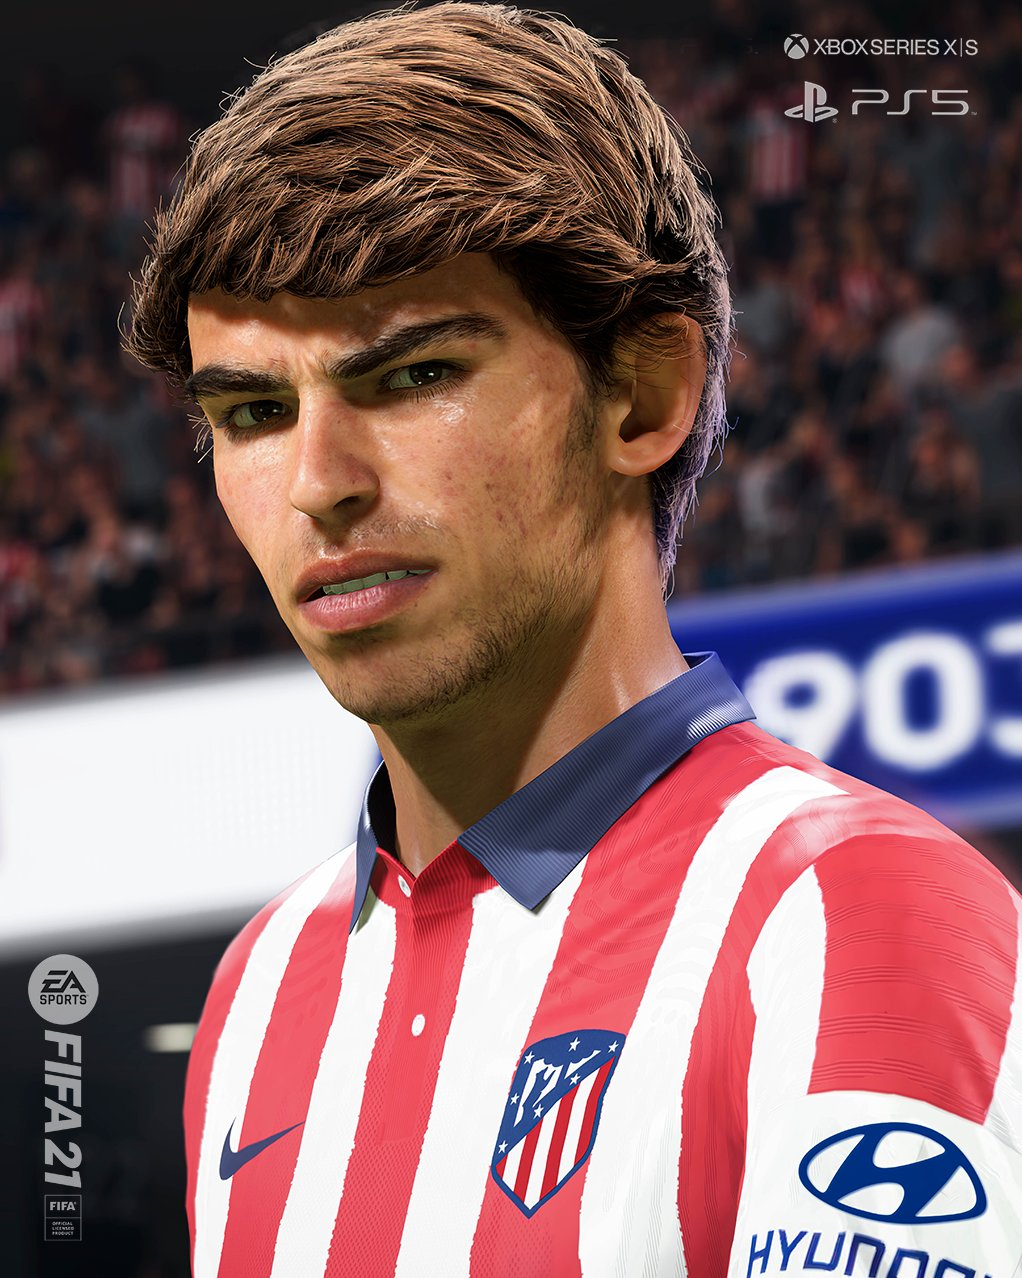 João Félix, do Atlético de Madrid, no FIFA 21